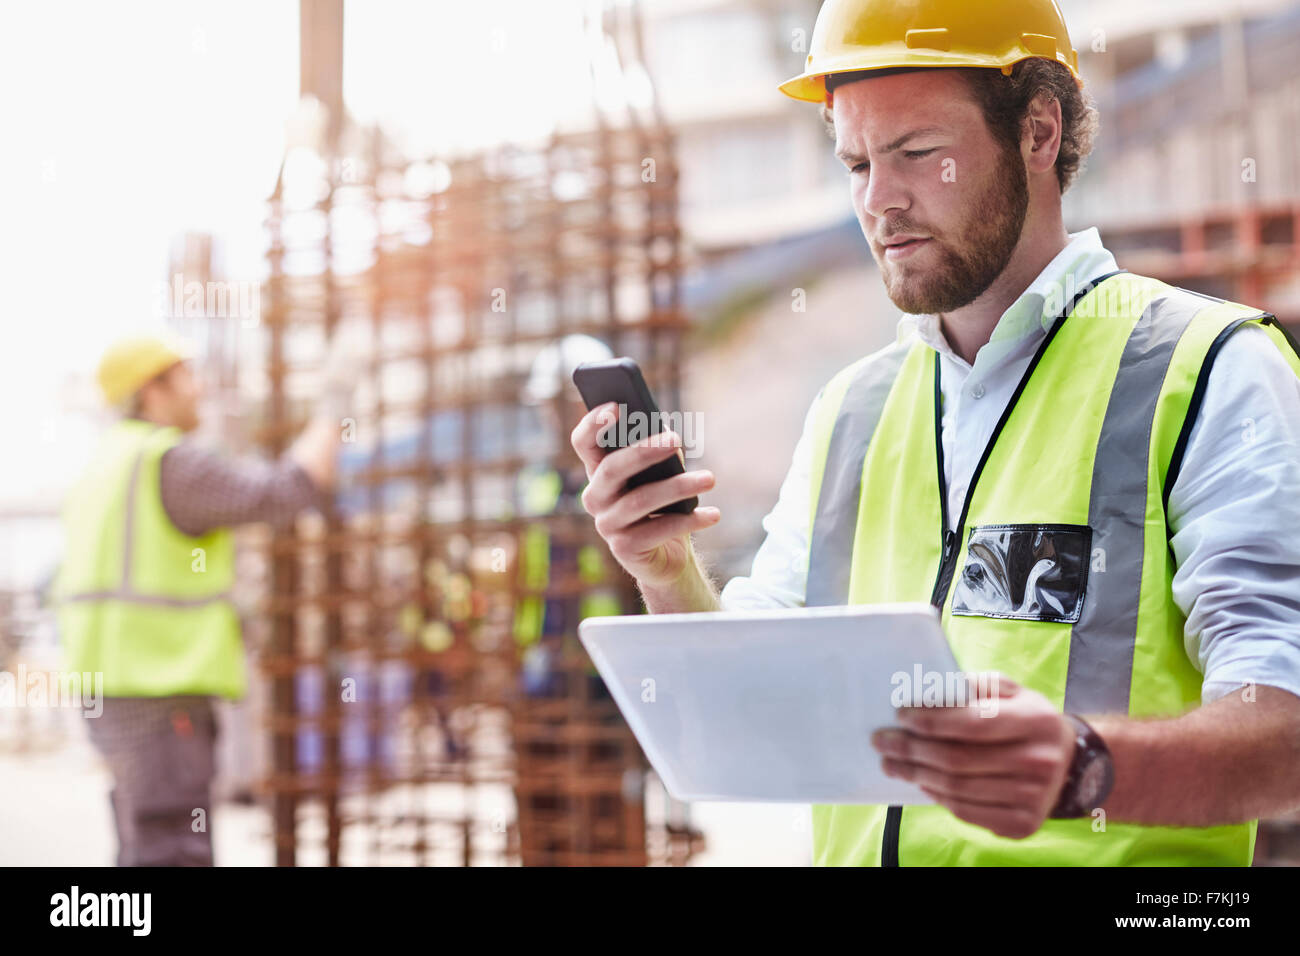 Construction worker with digital tablet texting with cell phone at construction site - Stock Image